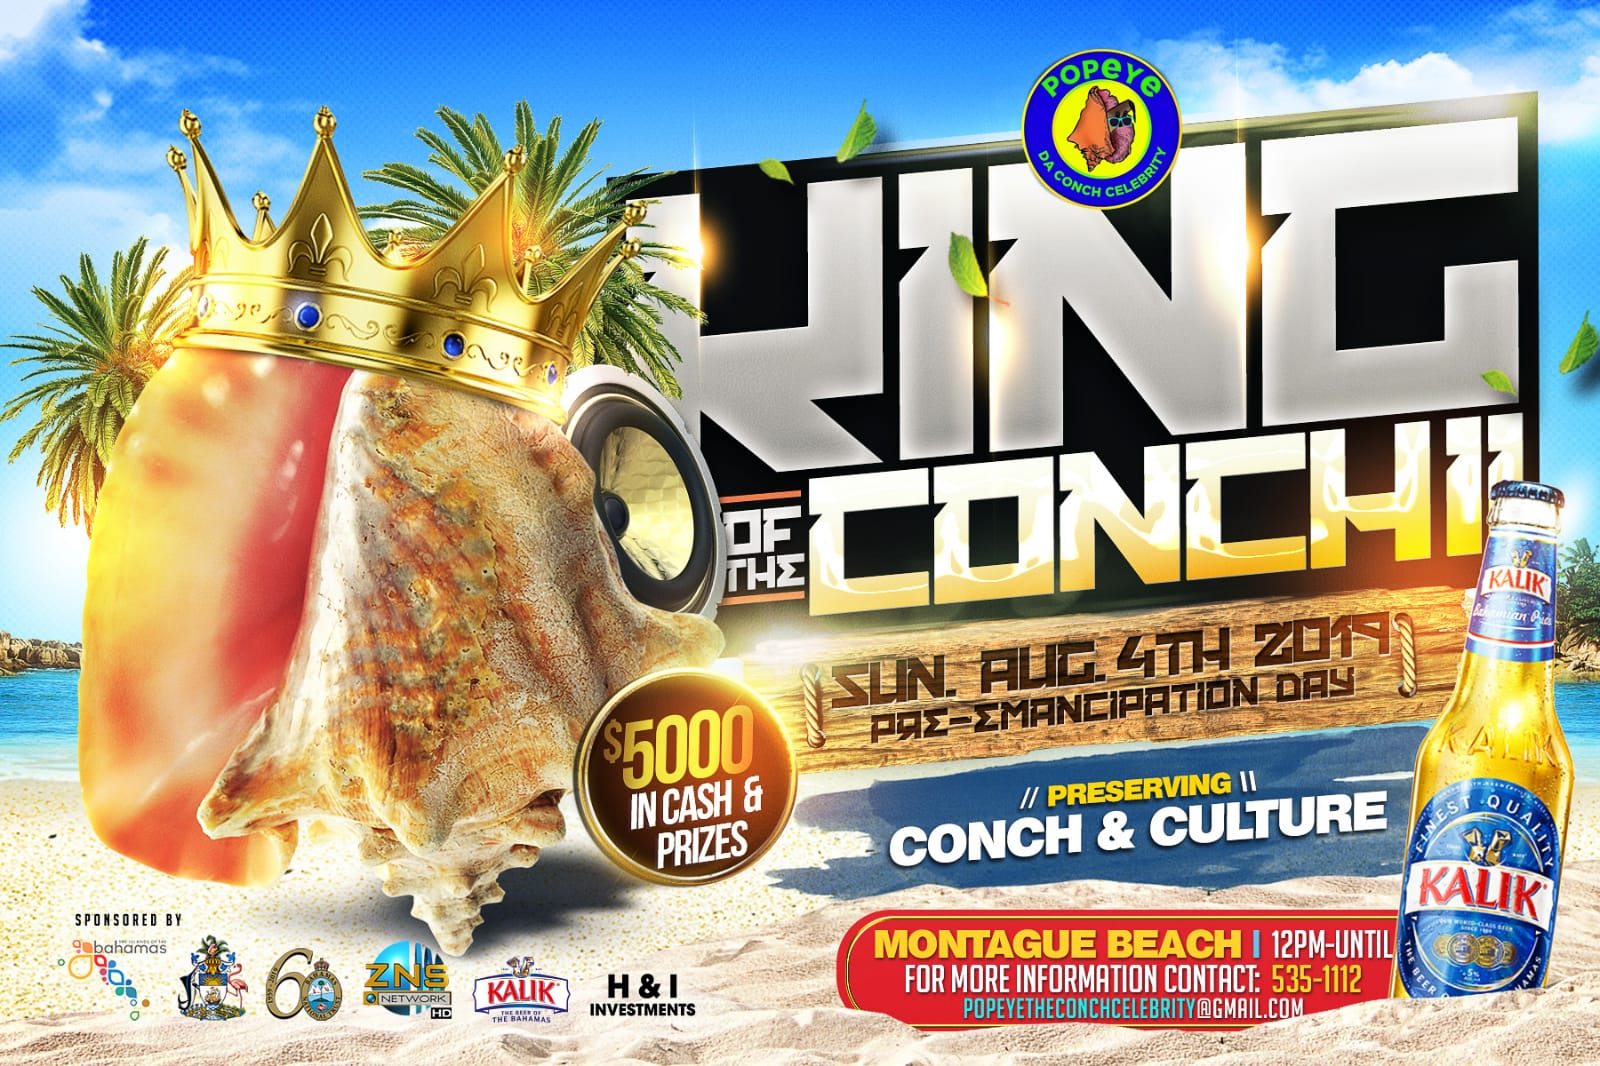 King of the Conch Festival 2019 front.jpg